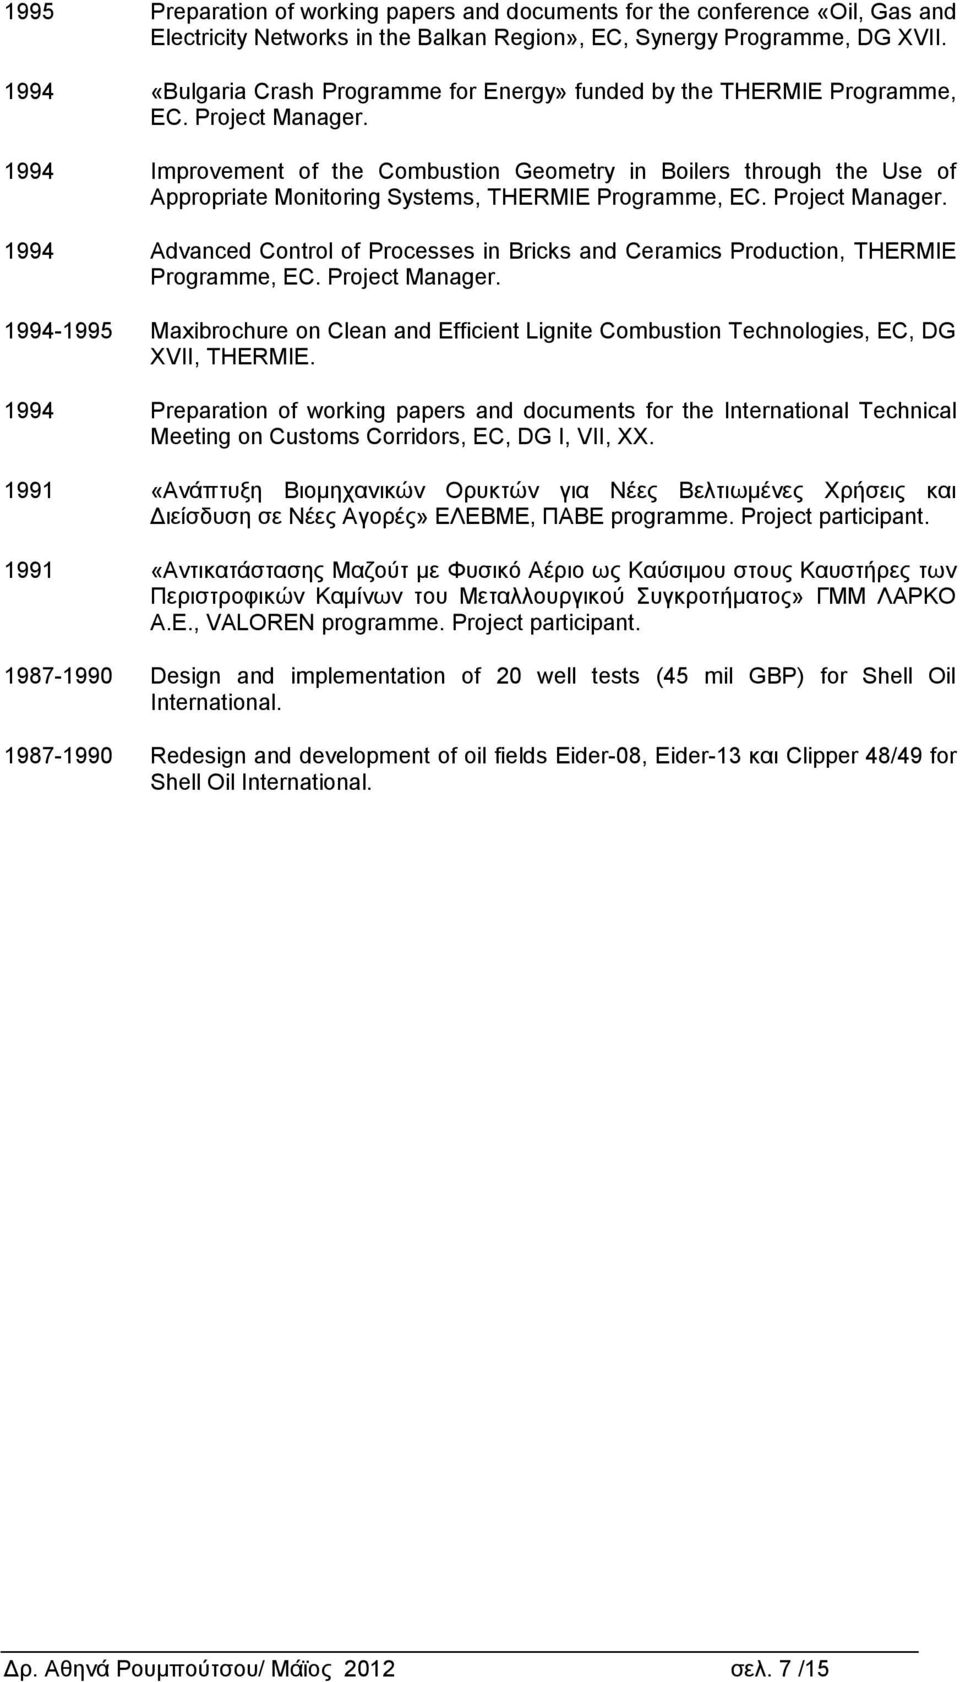 1994 Improvement of the Combustion Geometry in Boilers through the Use of Appropriate Monitoring Systems, THERMIE Programme, EC. Project Manager.